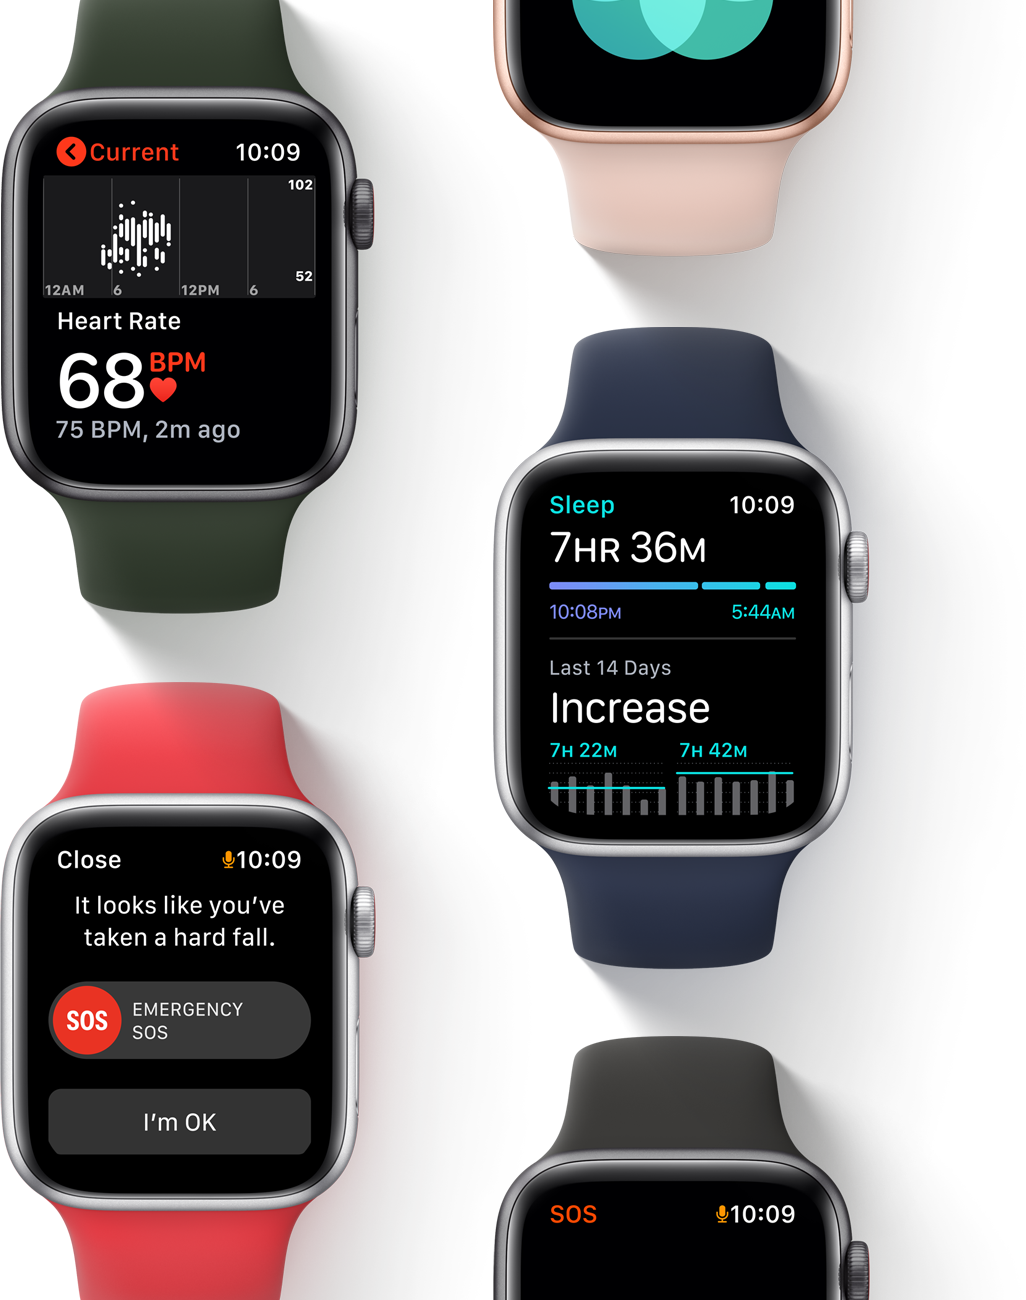 Monitor your heart rate, contact emergency response, and track your sleep with Apple Watch SE.